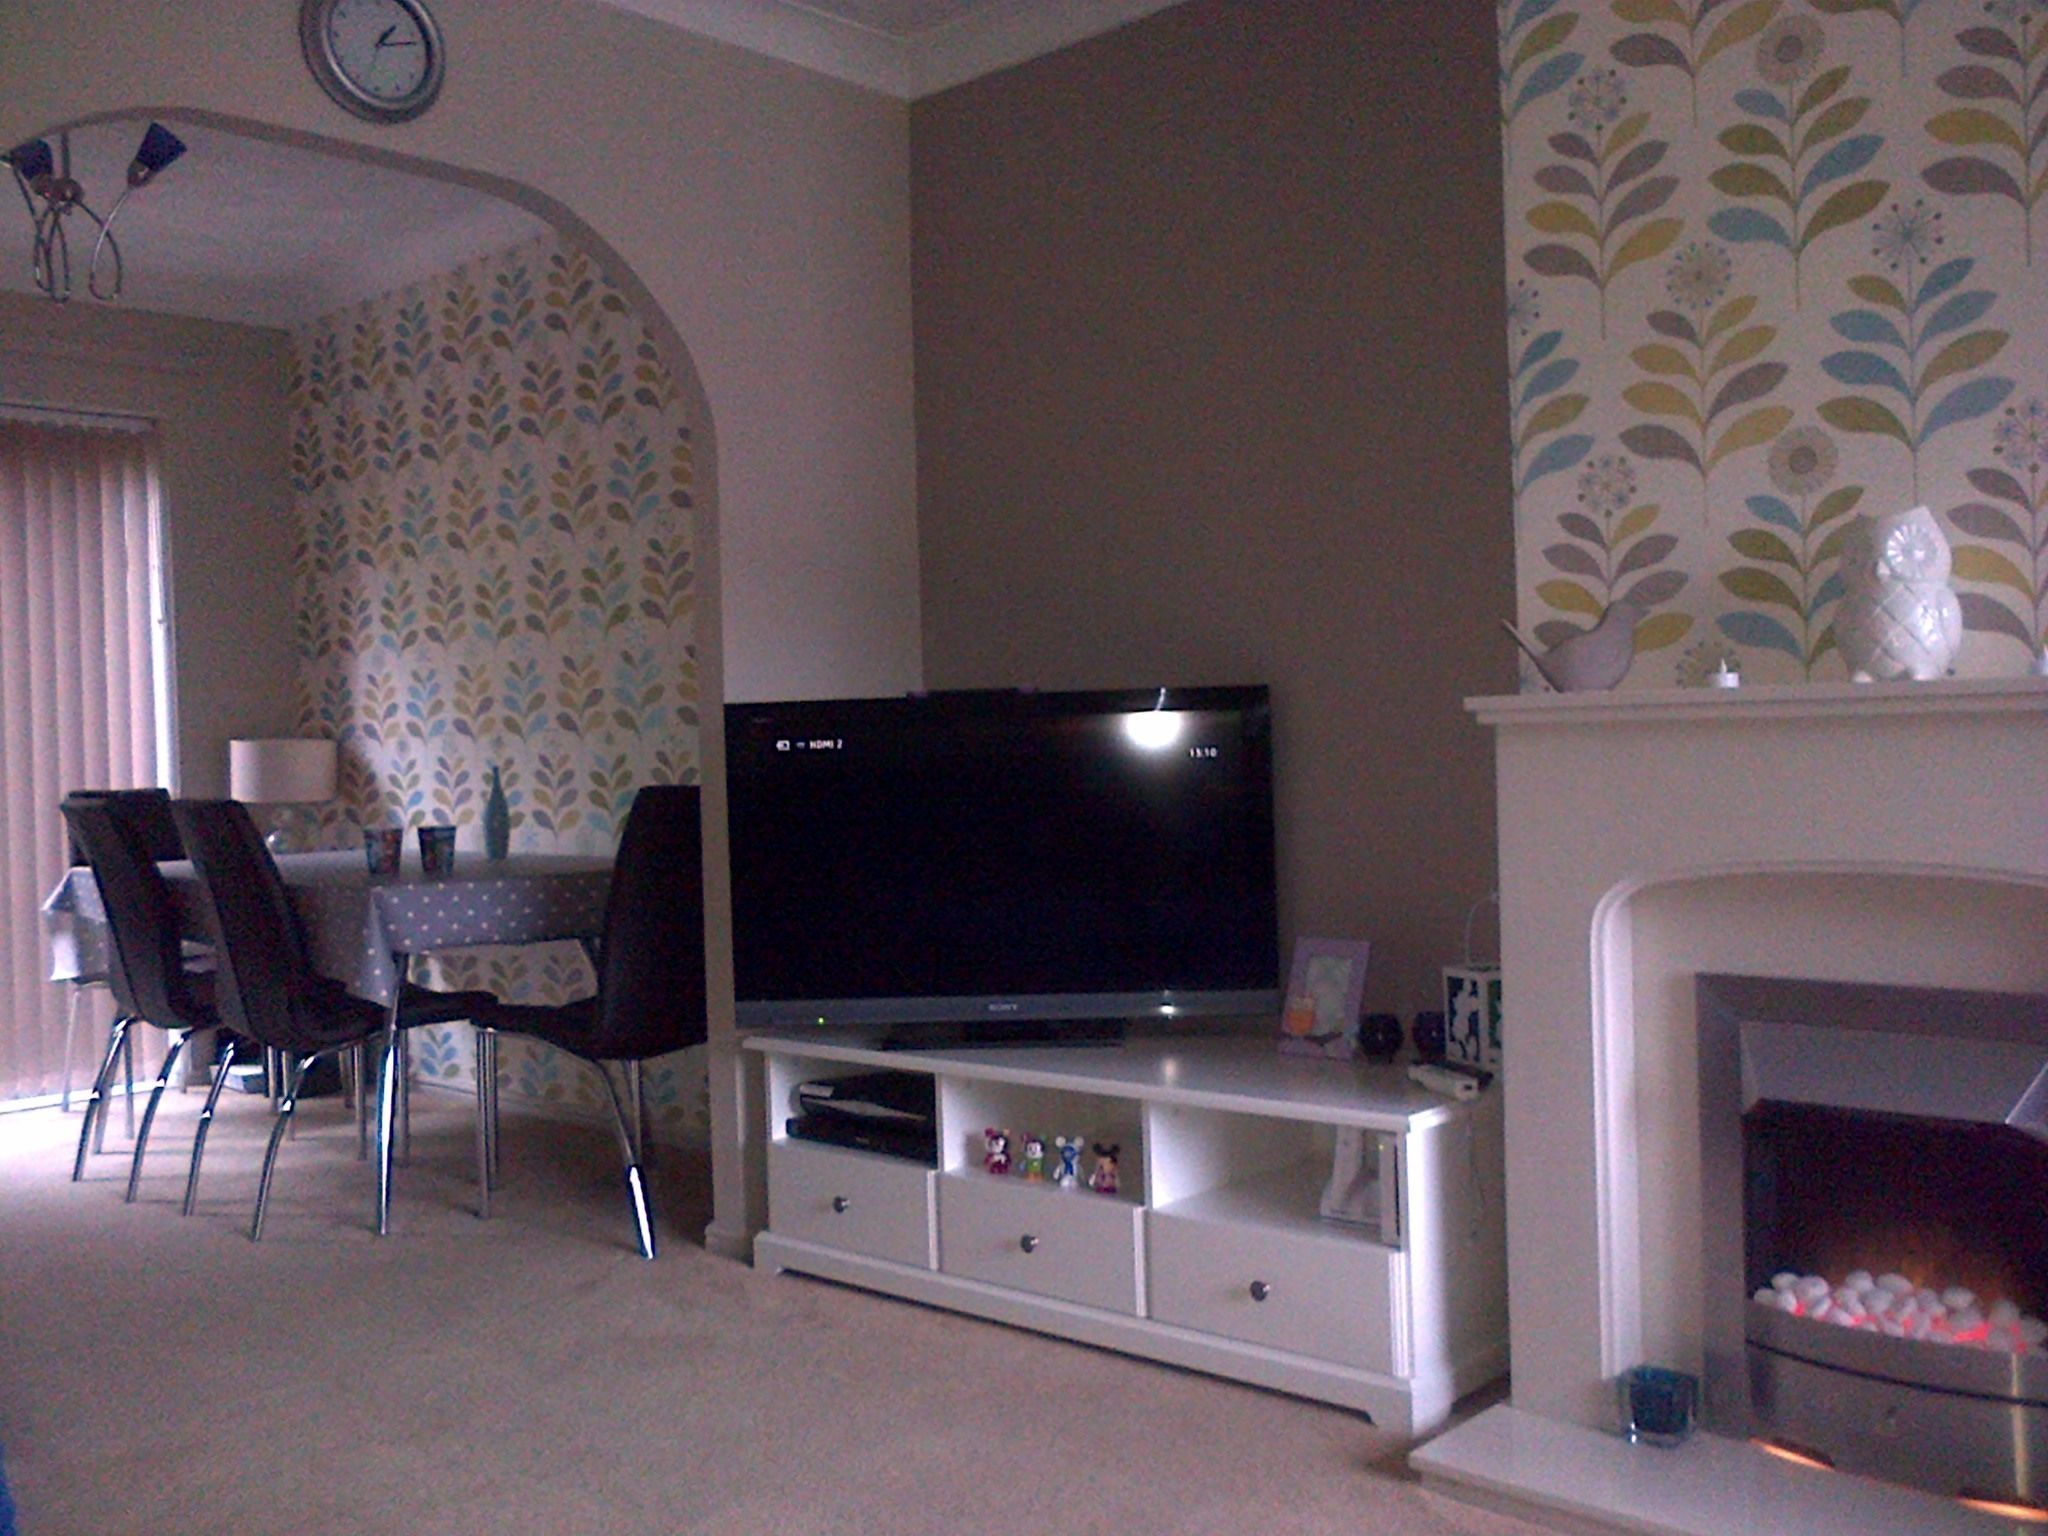 Wallpaper Ideas For Living Room With Dado Rail